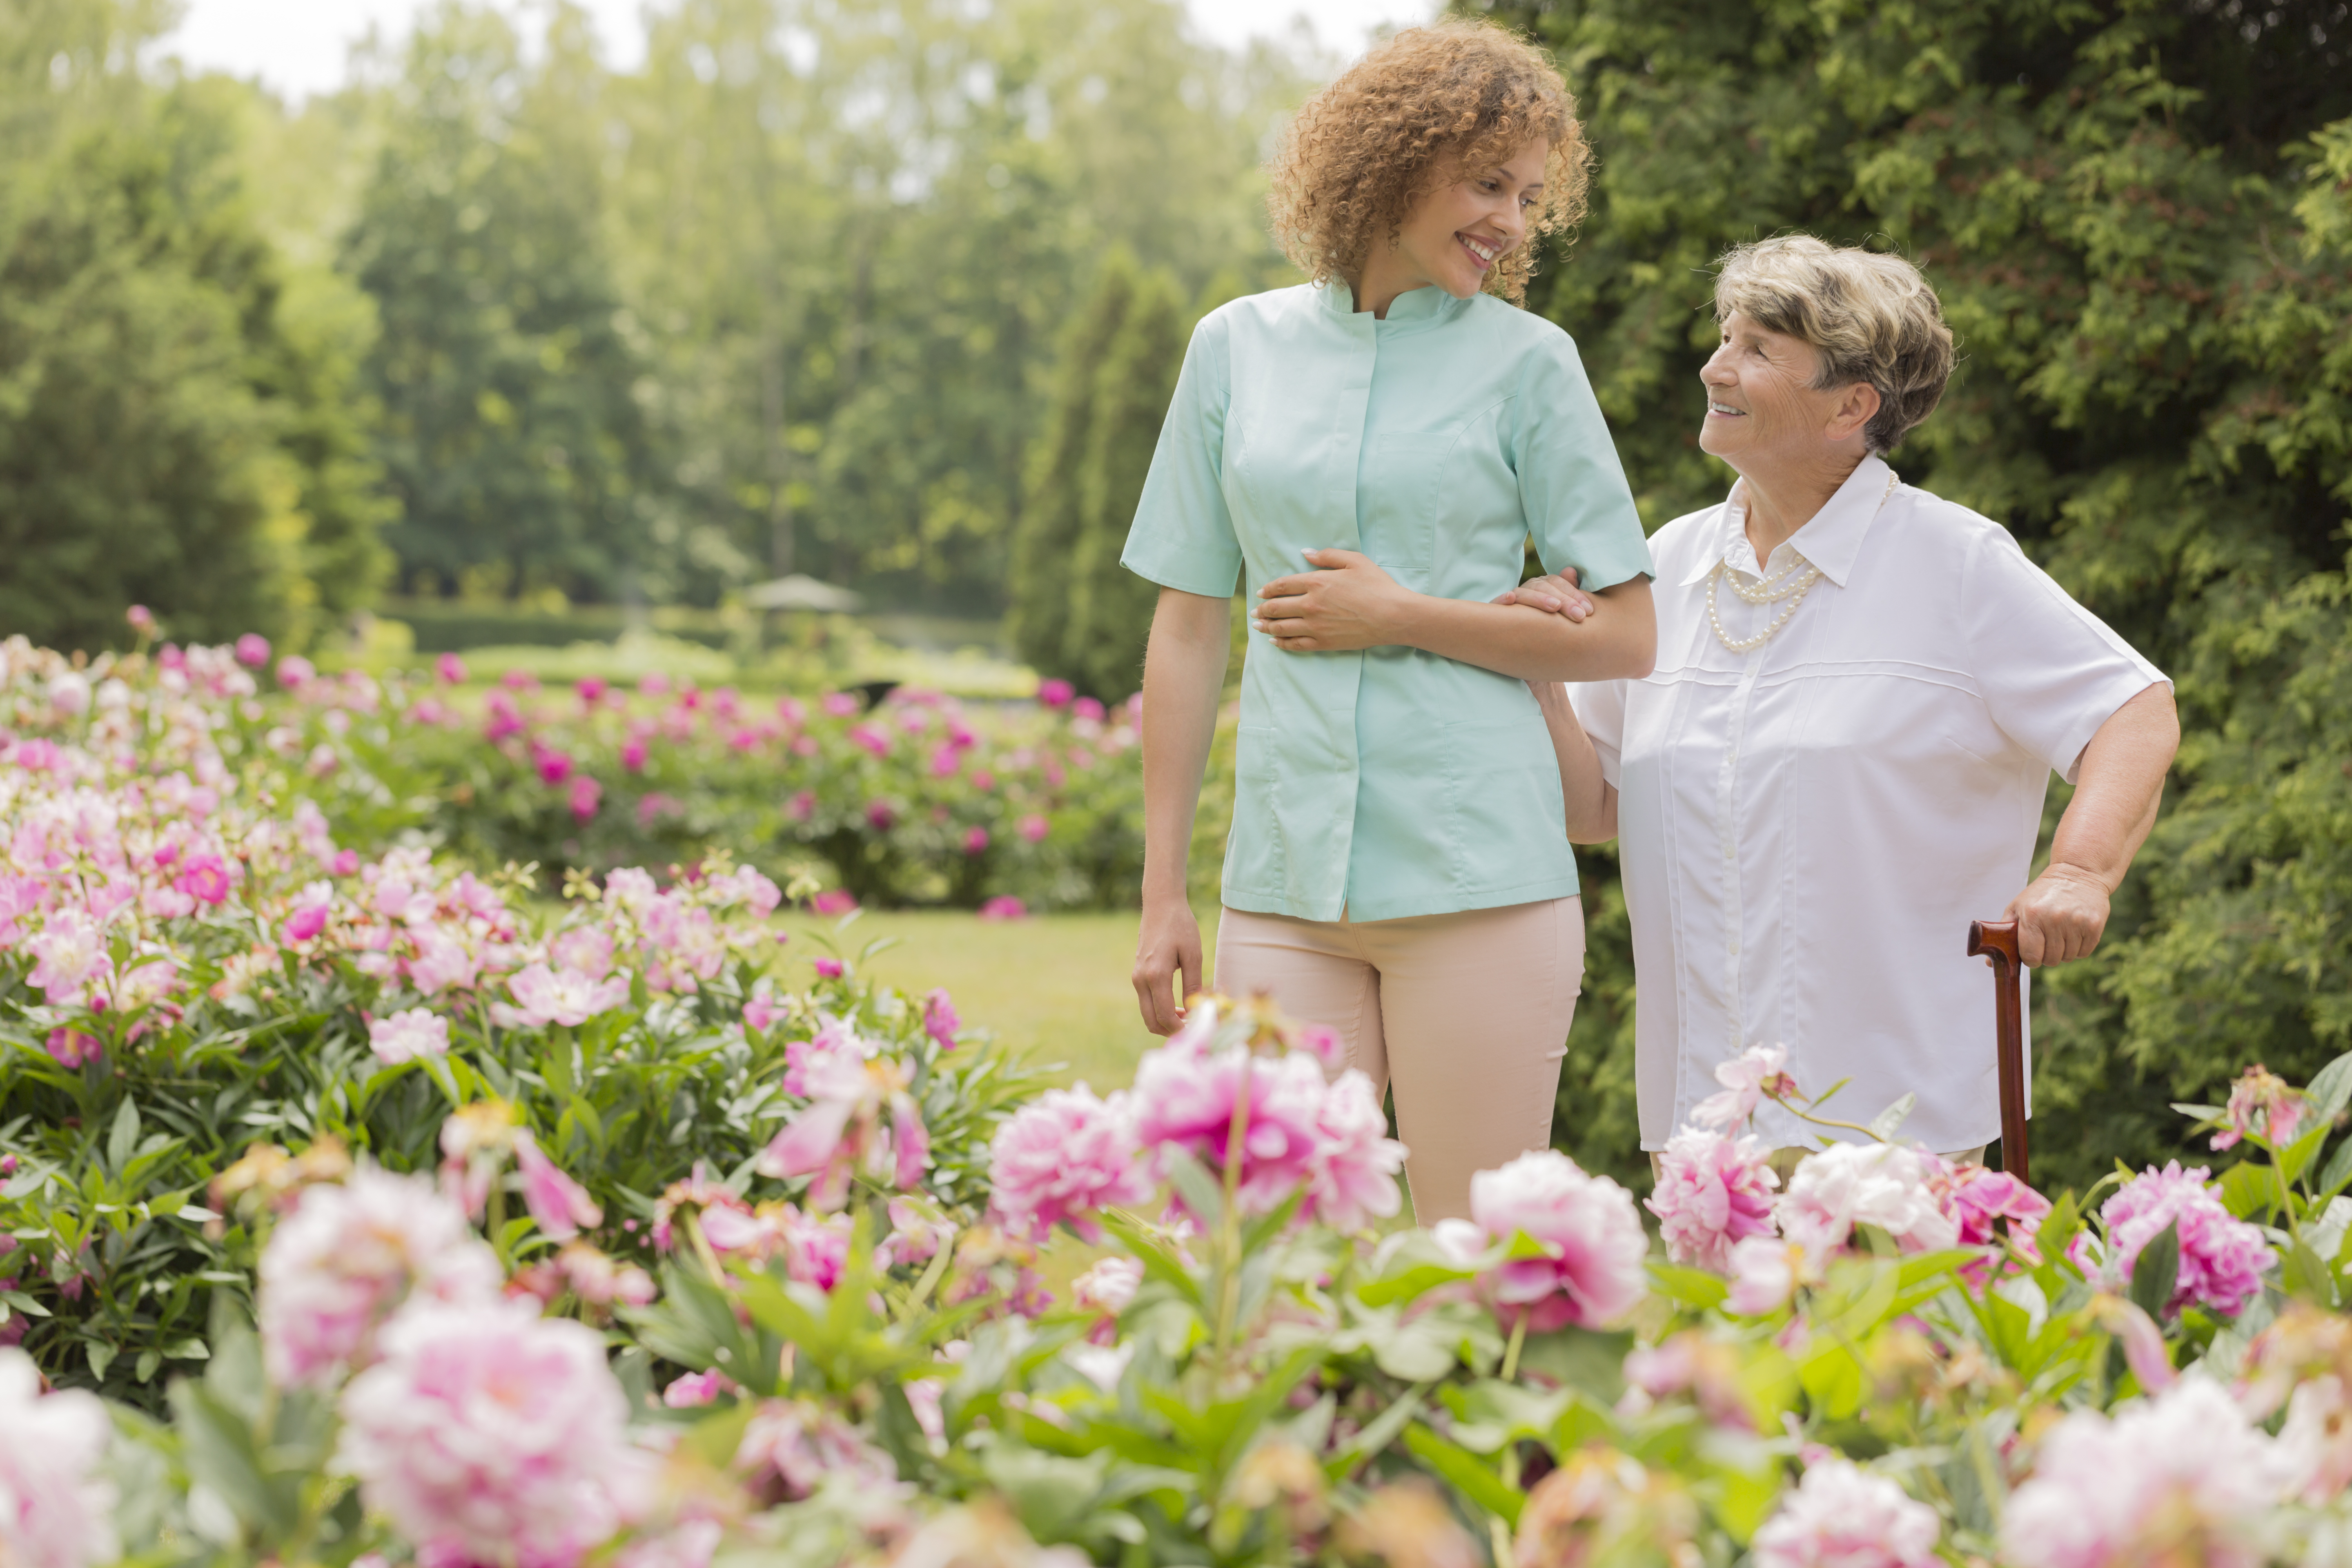 Advantages of In-Home Care